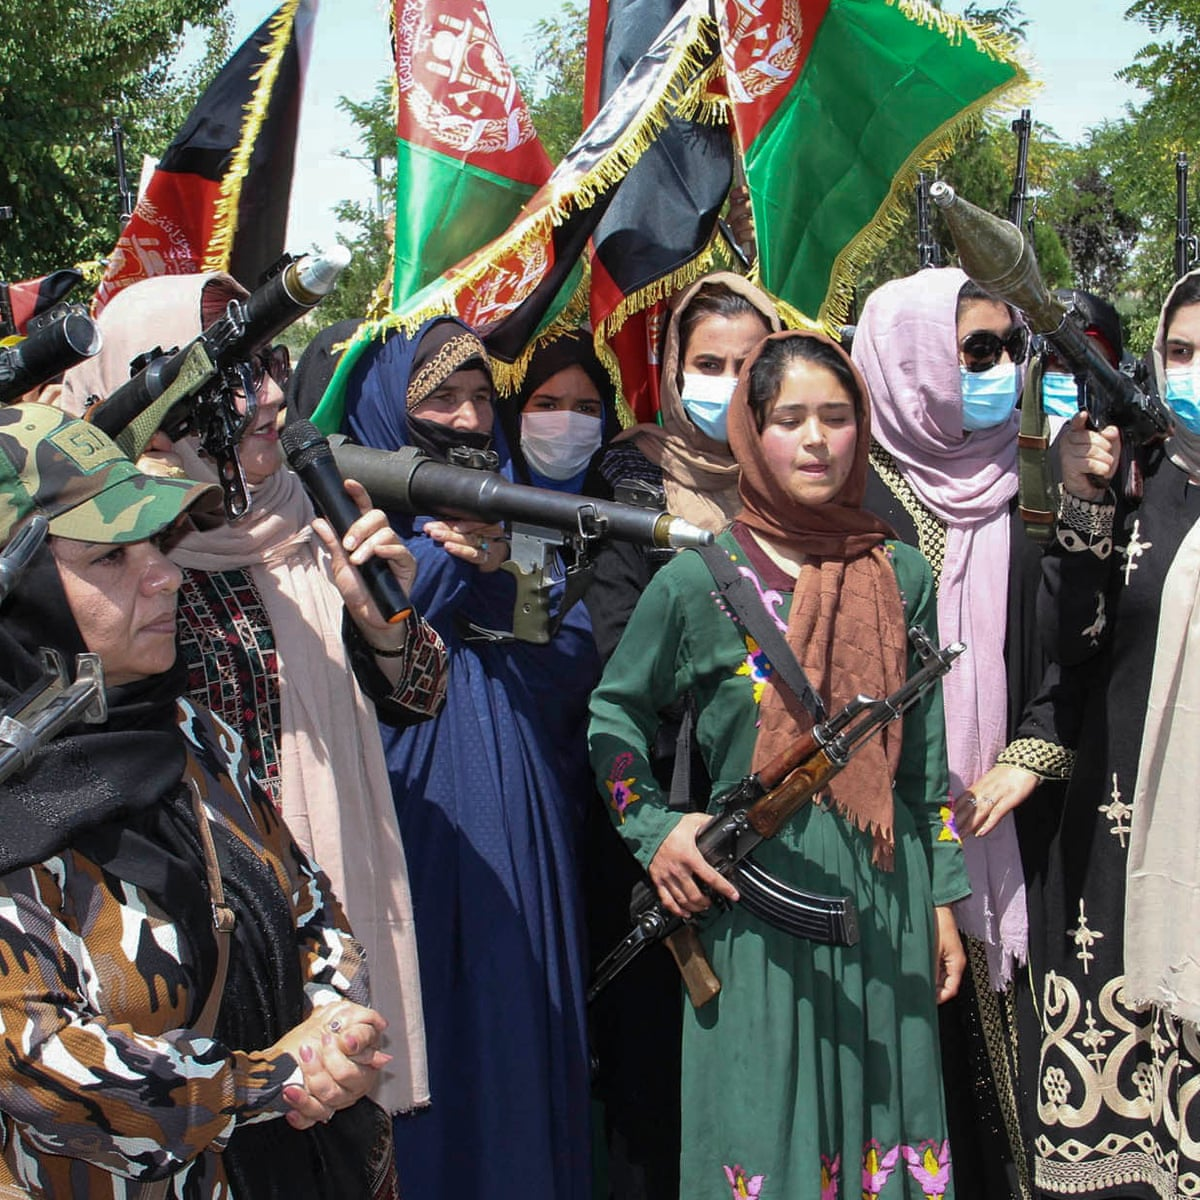 Armed Afghan women take to streets in show of defiance against Taliban |  Afghanistan | The Guardian